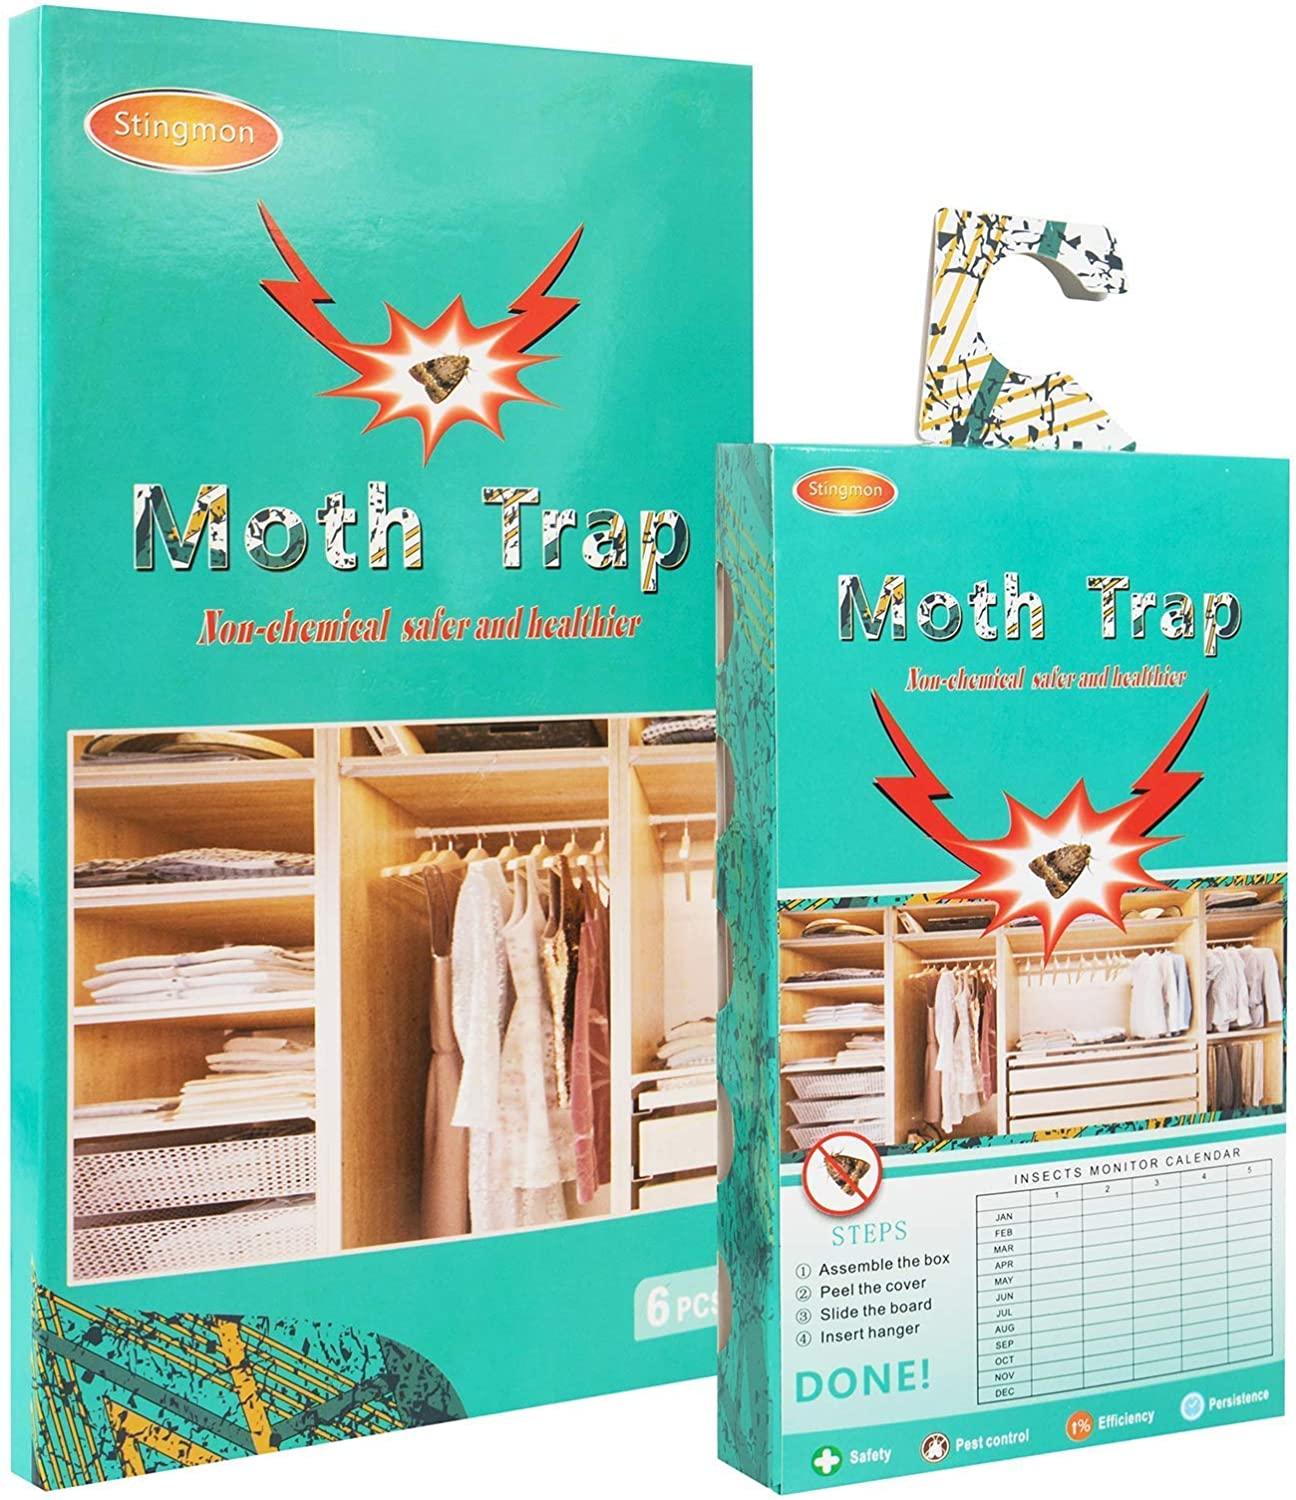 6 PCS Sticky Pantry Moth Traps, Moths Killer Indoor for Food and Cupboard Moth, Non-Toxic Safe Sticky Glue Trap